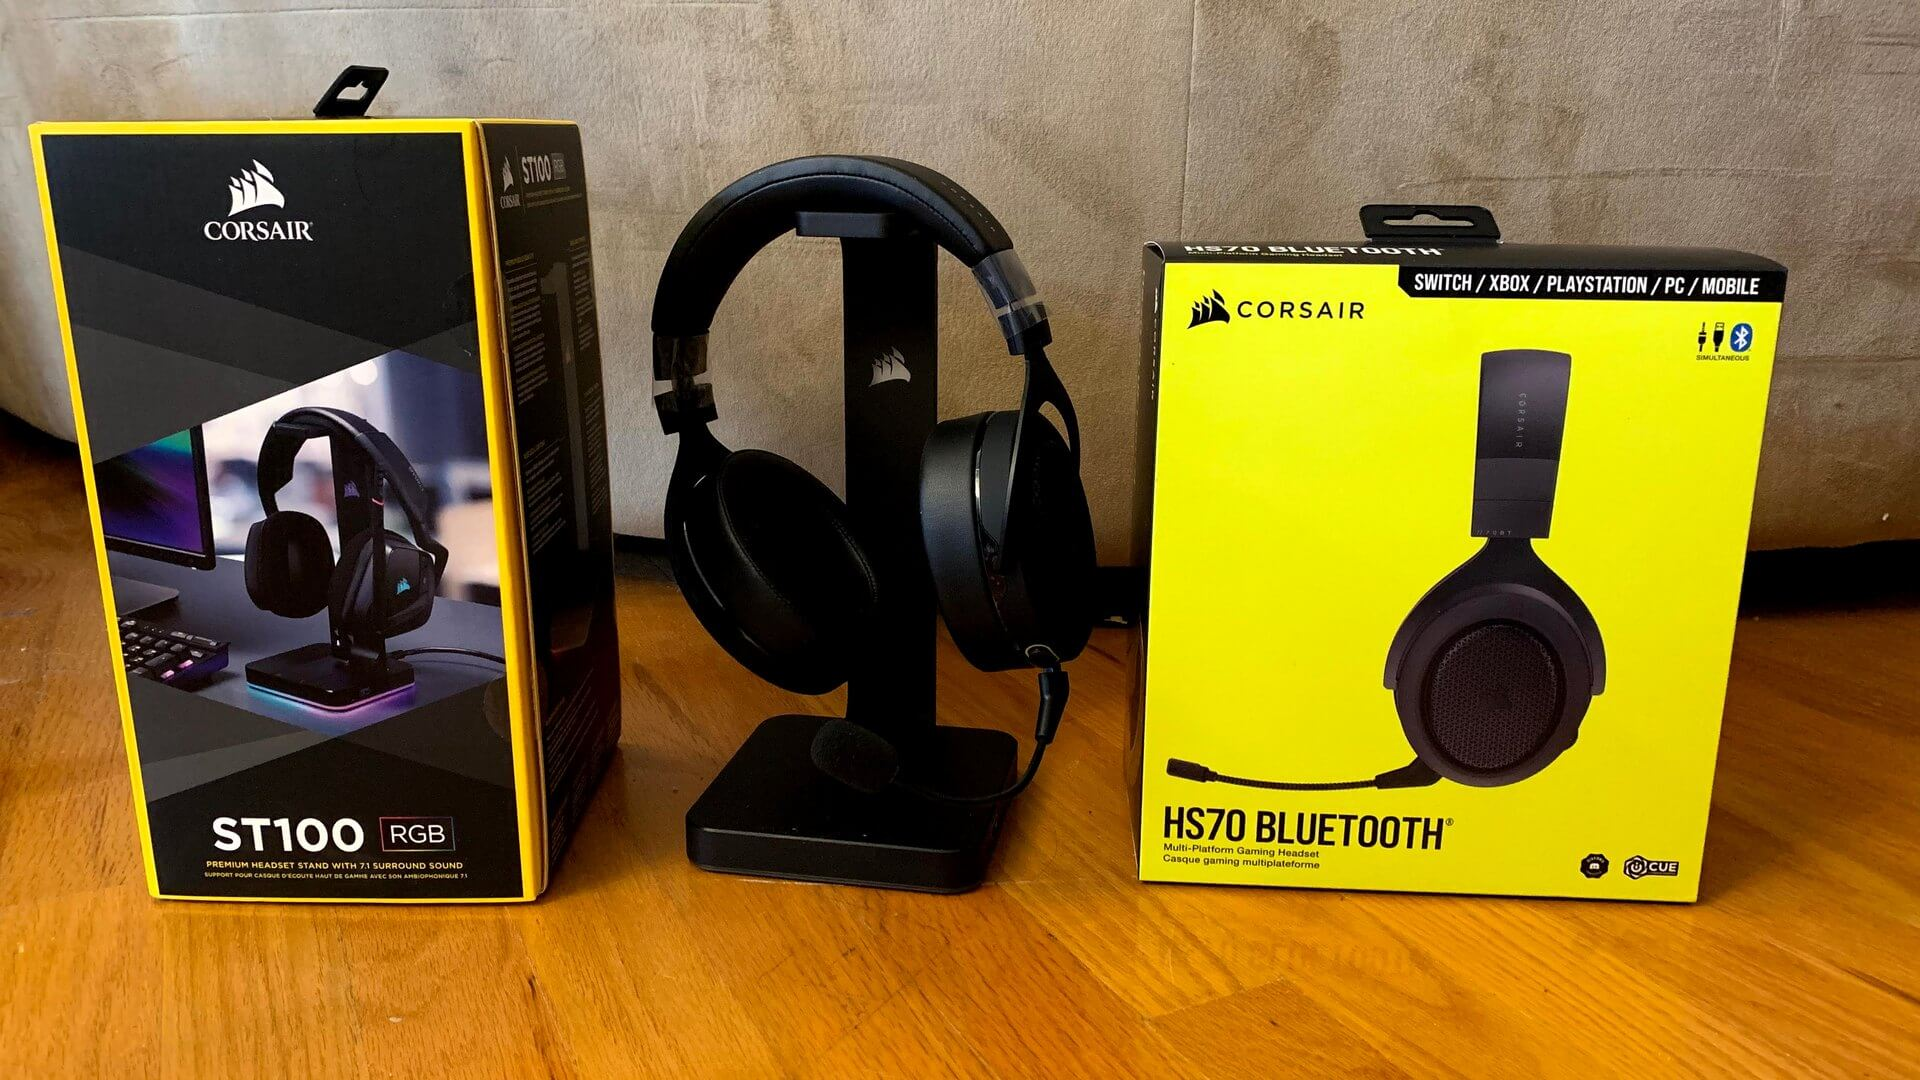 Corsair HS70 Bluetooth Headset and ST100 RGB Premium Stand Review